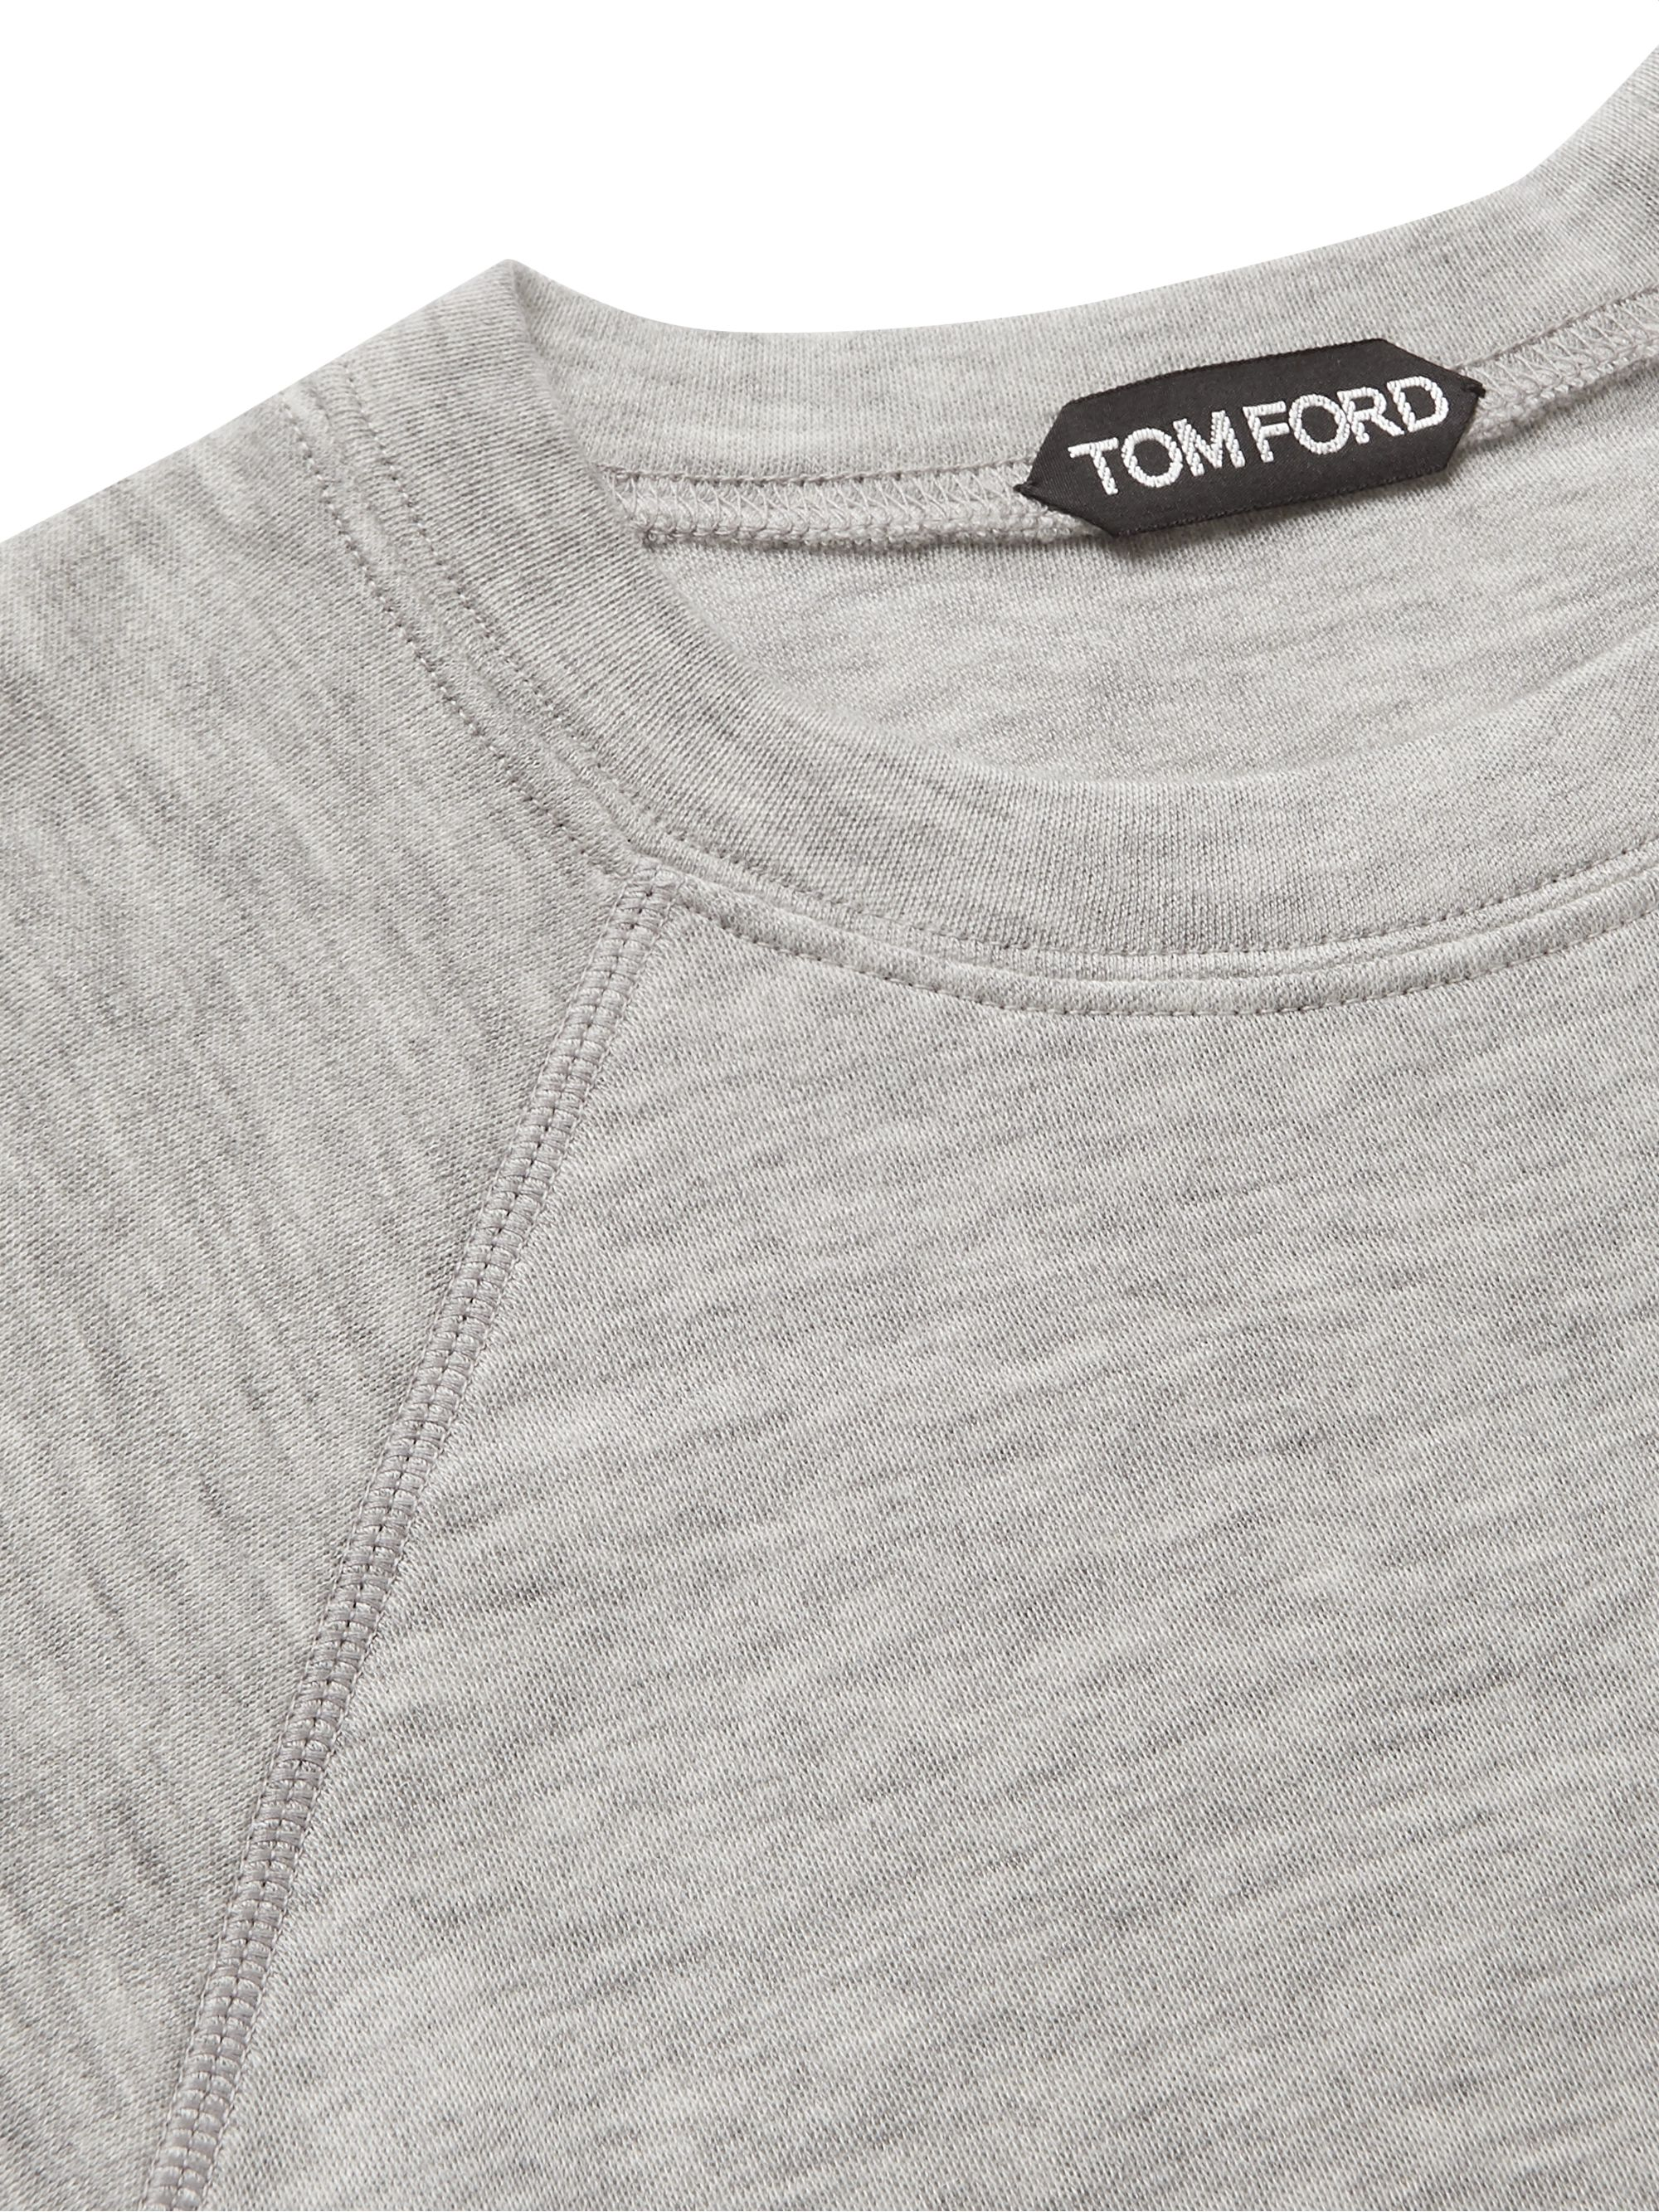 TOM FORD Mélange Cashmere-Jersey Sweater